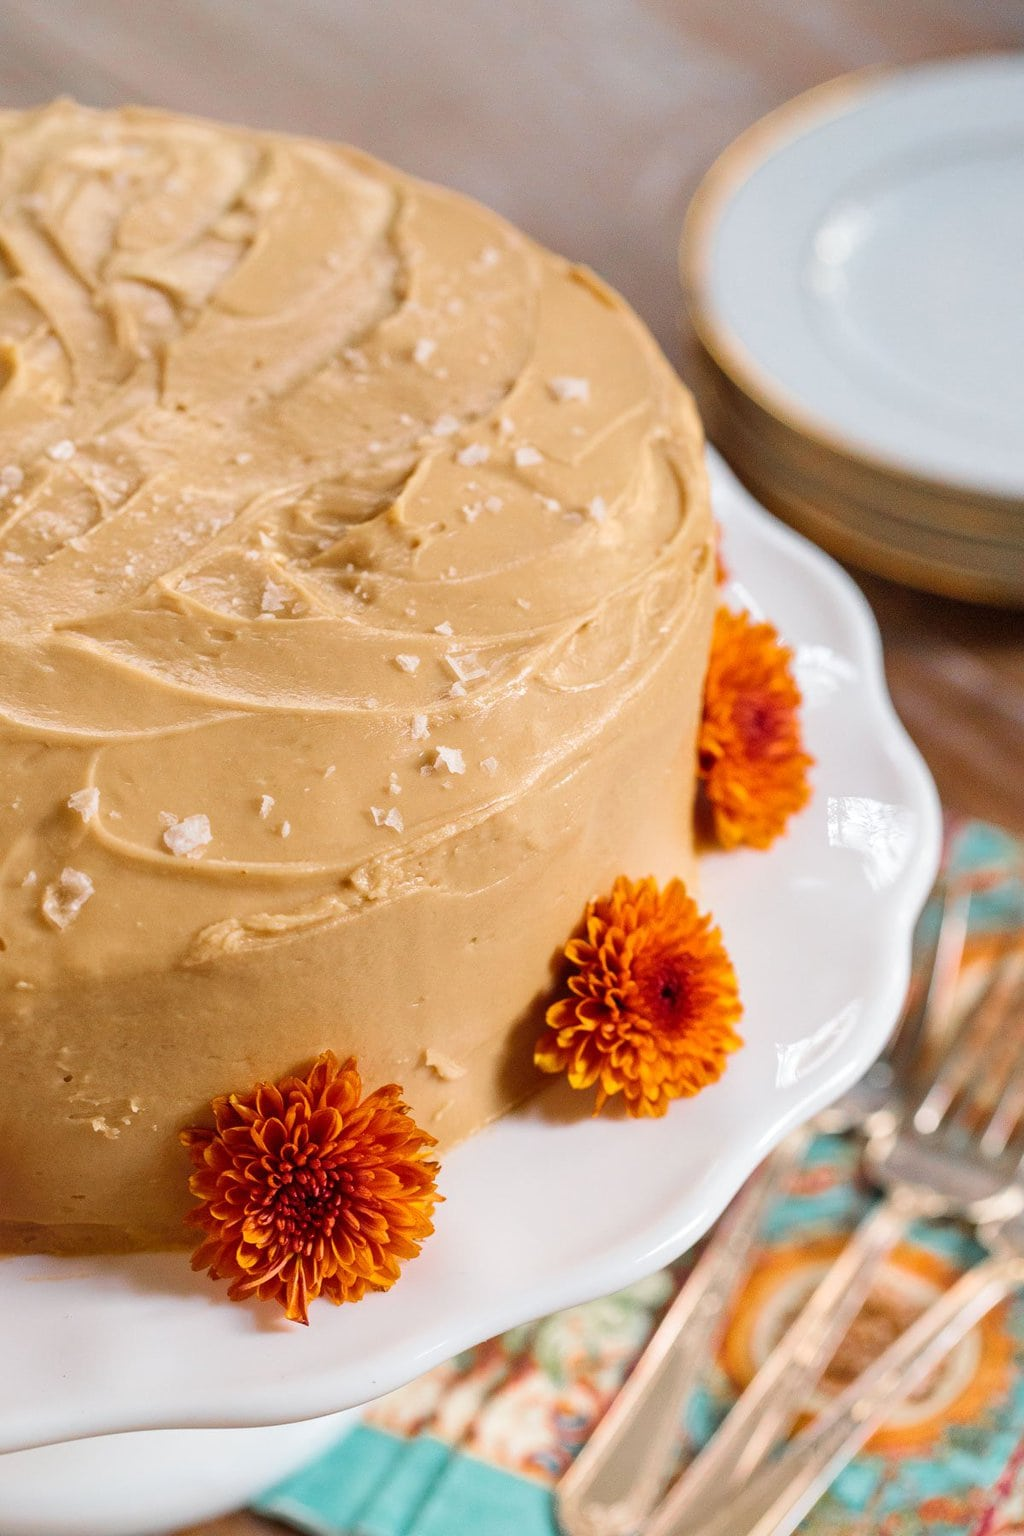 Photo of a One-Bowl Pumpkin Cake with Salted Caramel Icing on a white cake stand and decorated with deep orange chrysanthemums.